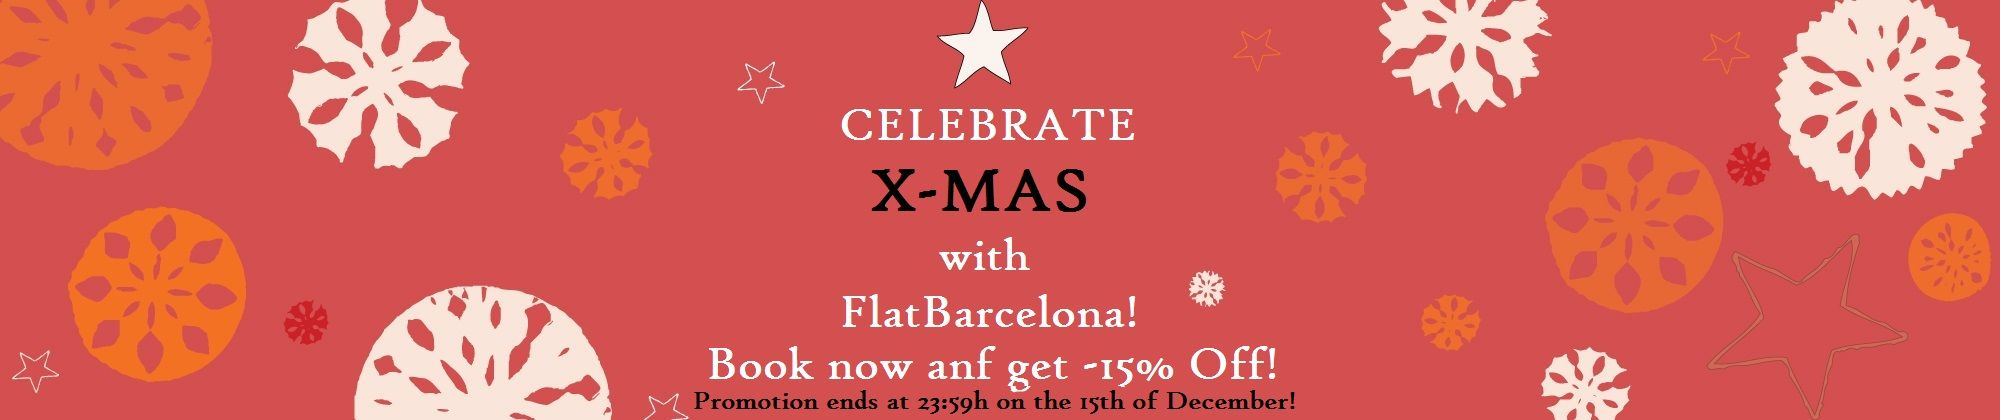 Only a few flats left for X-Mas and New Years! Be quick and enjoy some last minute discounts till the 15th of December at: http://www.flatbarcelona.net/special-offers_w13.aspx